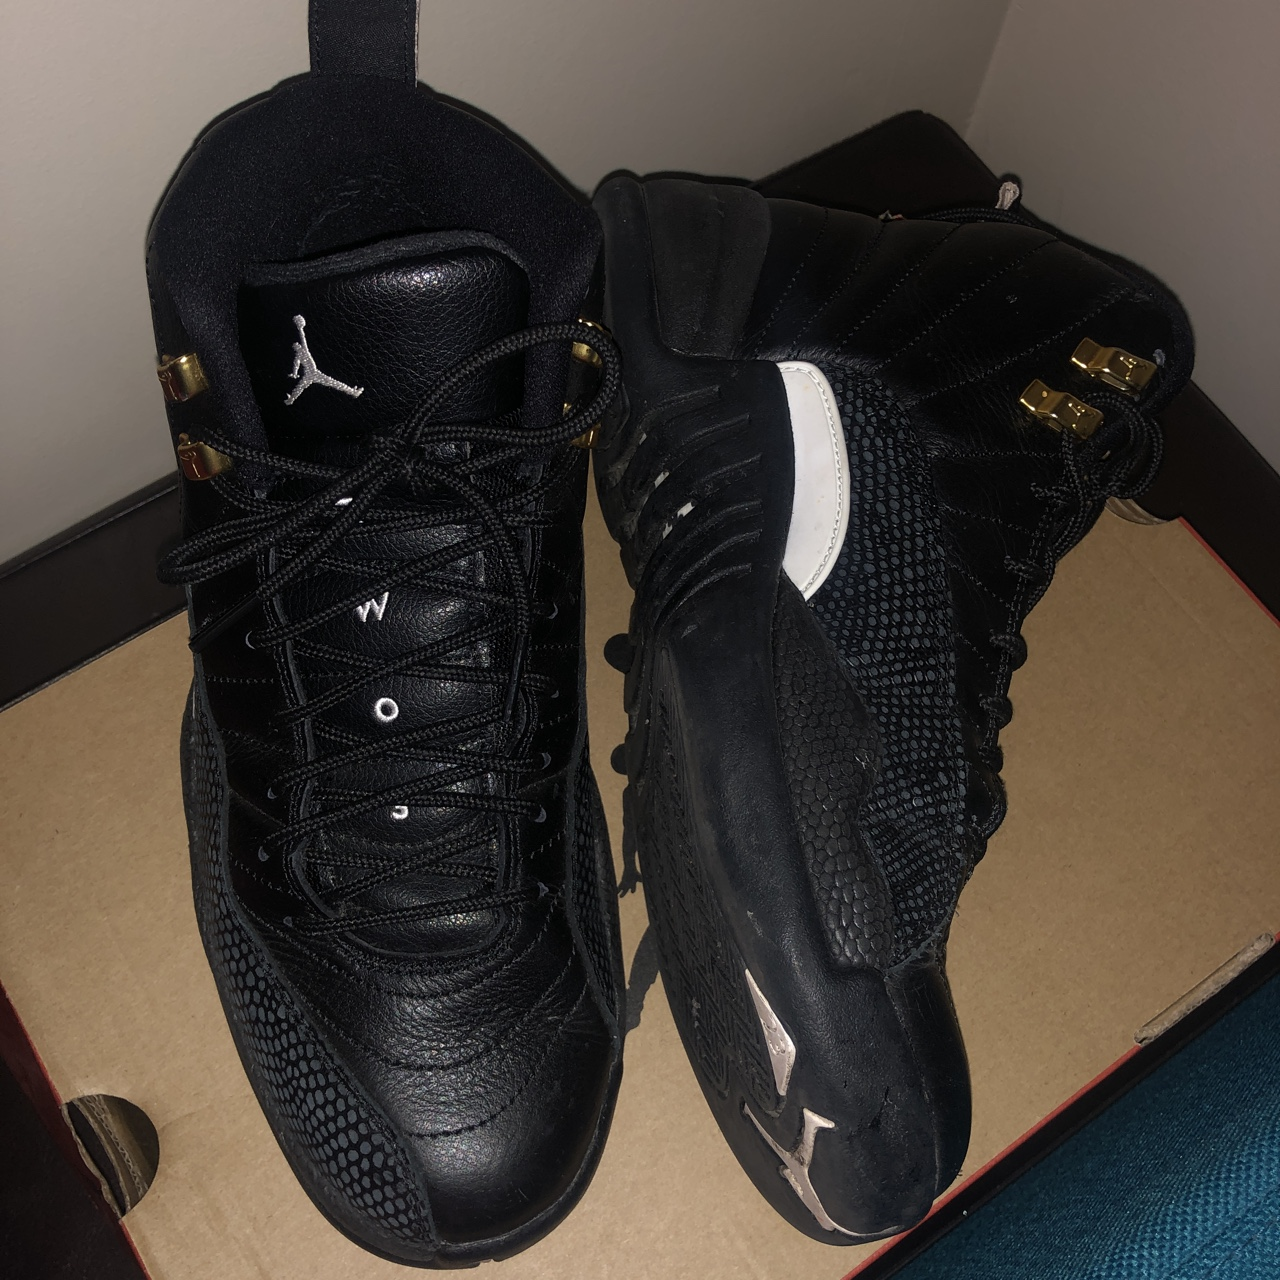 hot sale online 61cd5 51bc0 Nike Air Jordan Retro 12 - The Master - Size UK 7.5... - Depop